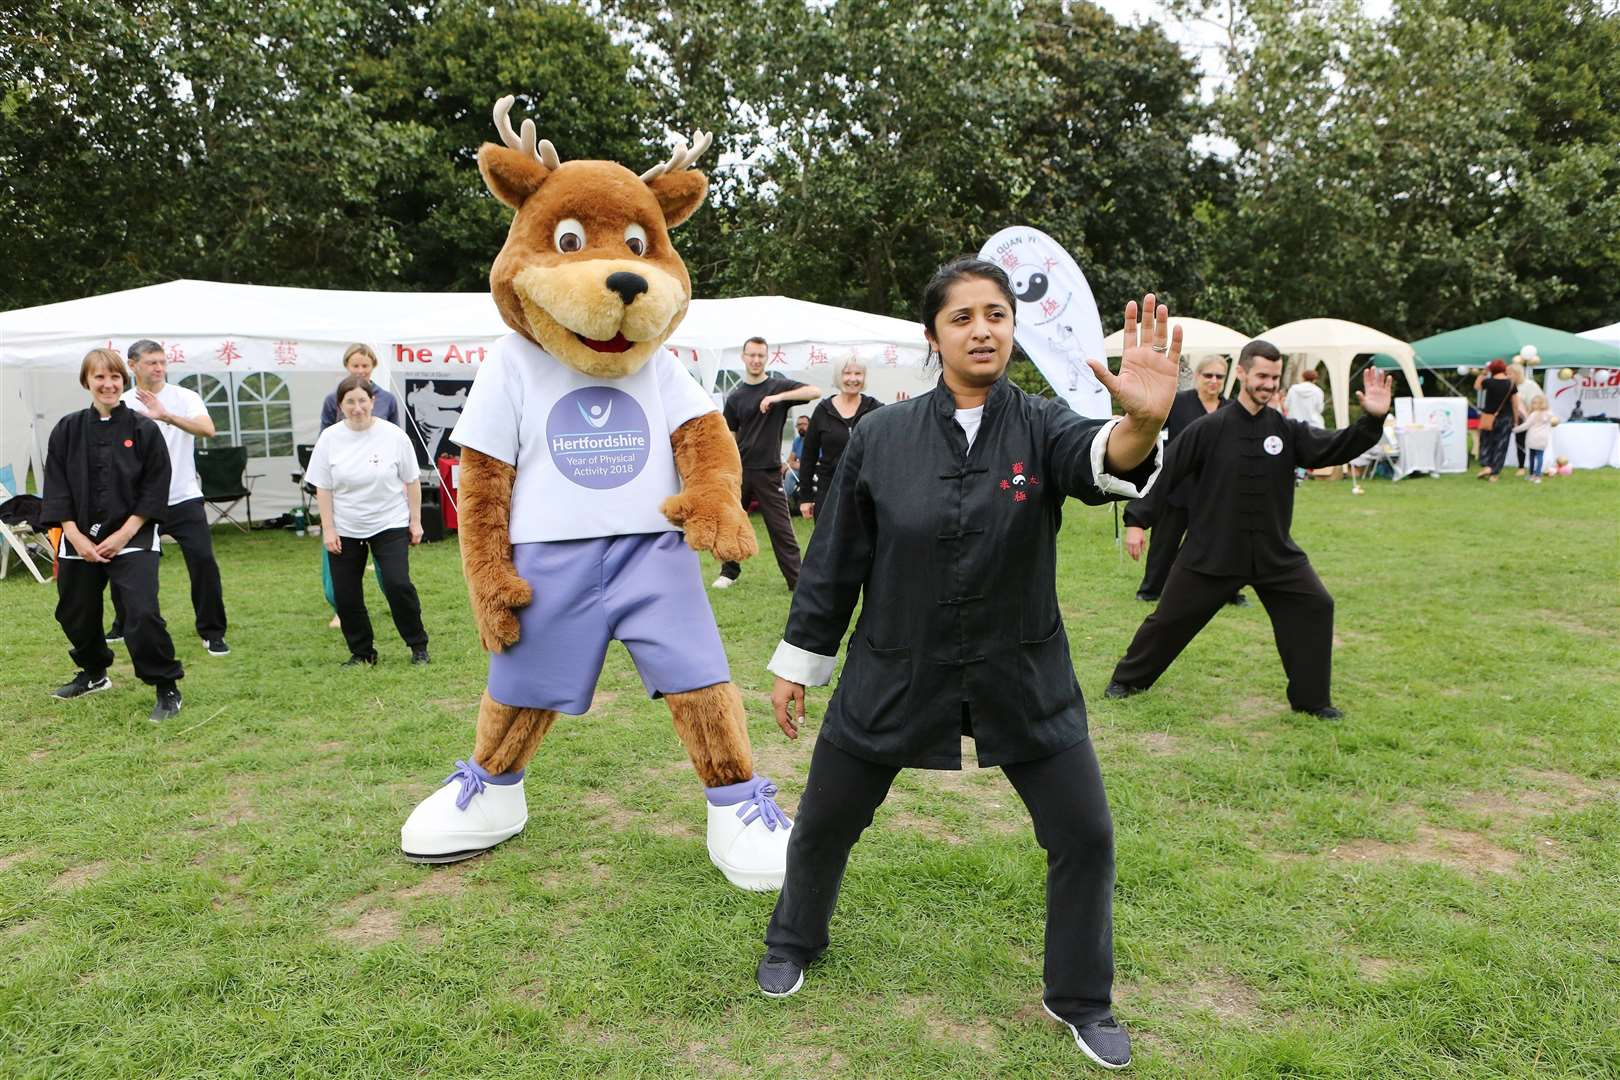 Goodness In The Park, Castle Park, Bishops Stortford. YOPA the Stag (event mascot) learning Tai Chi with Senior Instructor Vindy Hutchings of The Art of Tai Ji Quan.. (36522686)